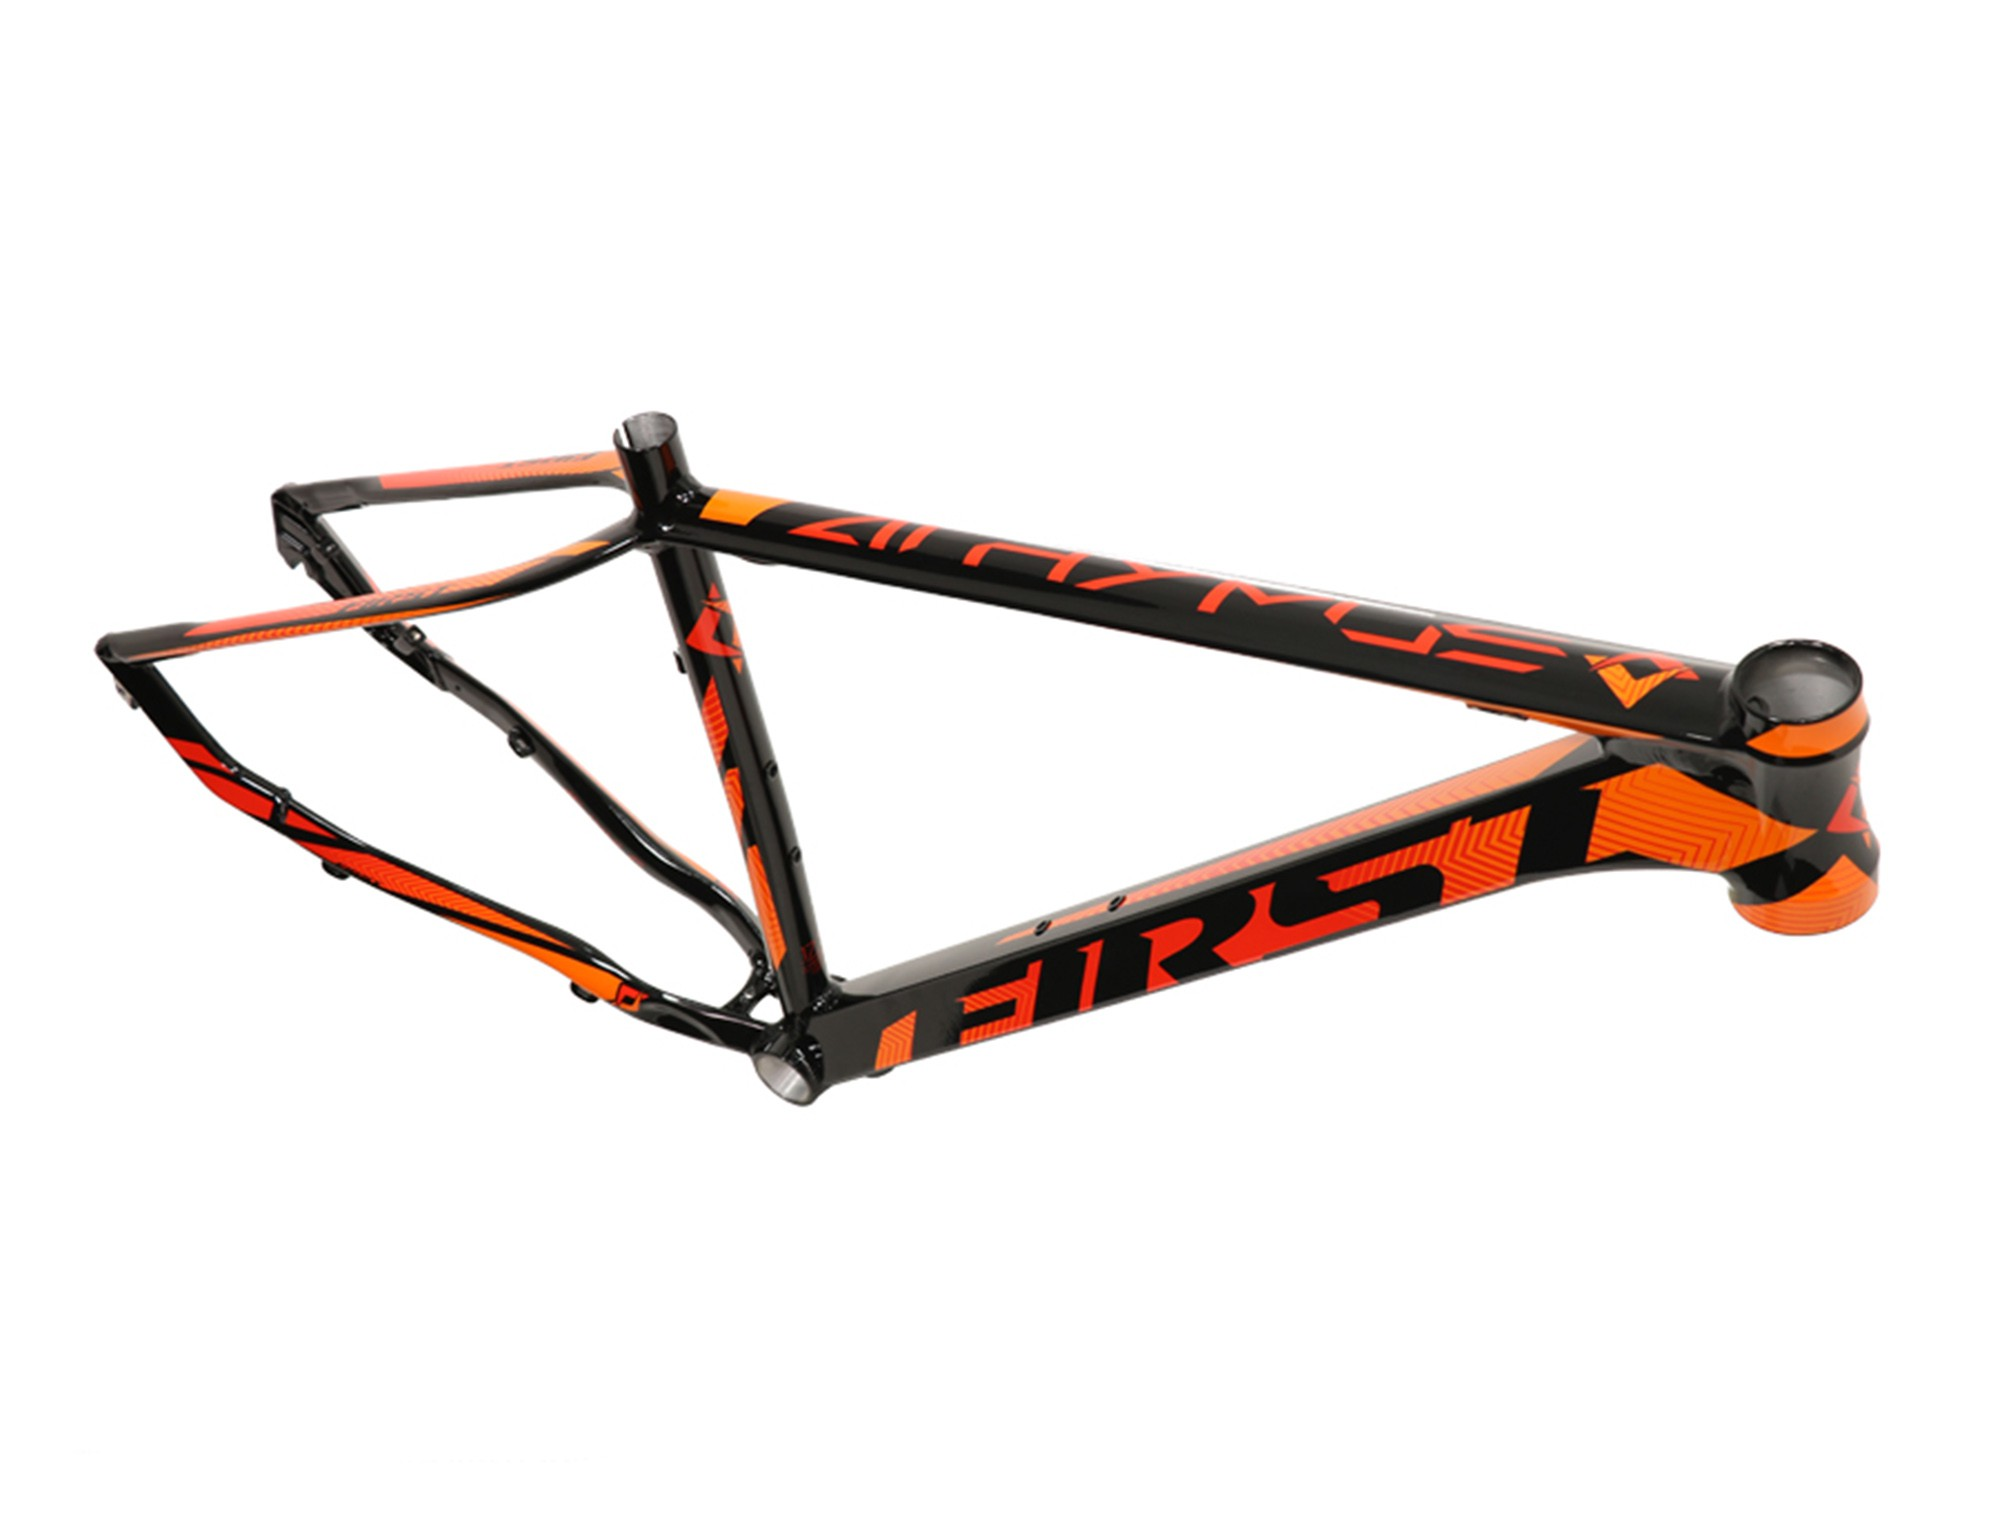 Quadro 29 Aluminio Athymus INDY - FIRST